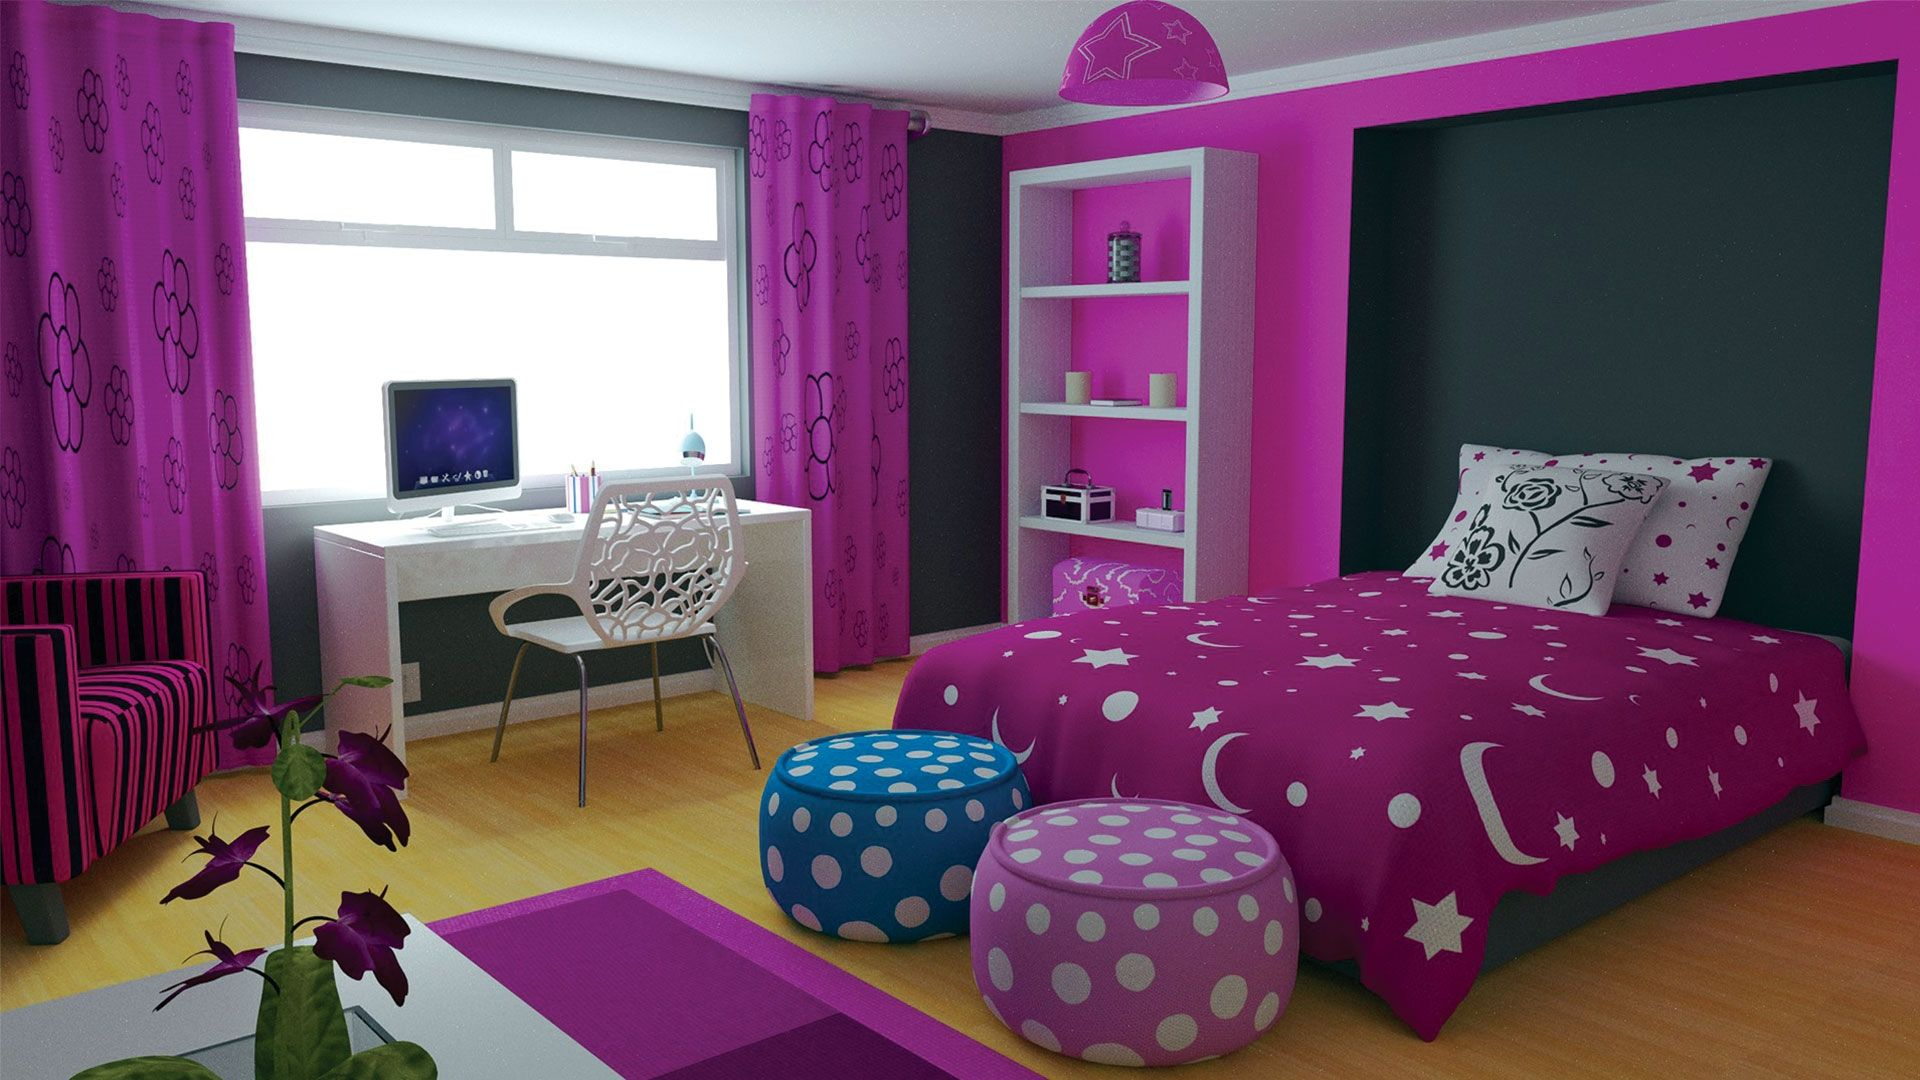 top 5 girls' bedroom decoration ideas in 2017 | decoration